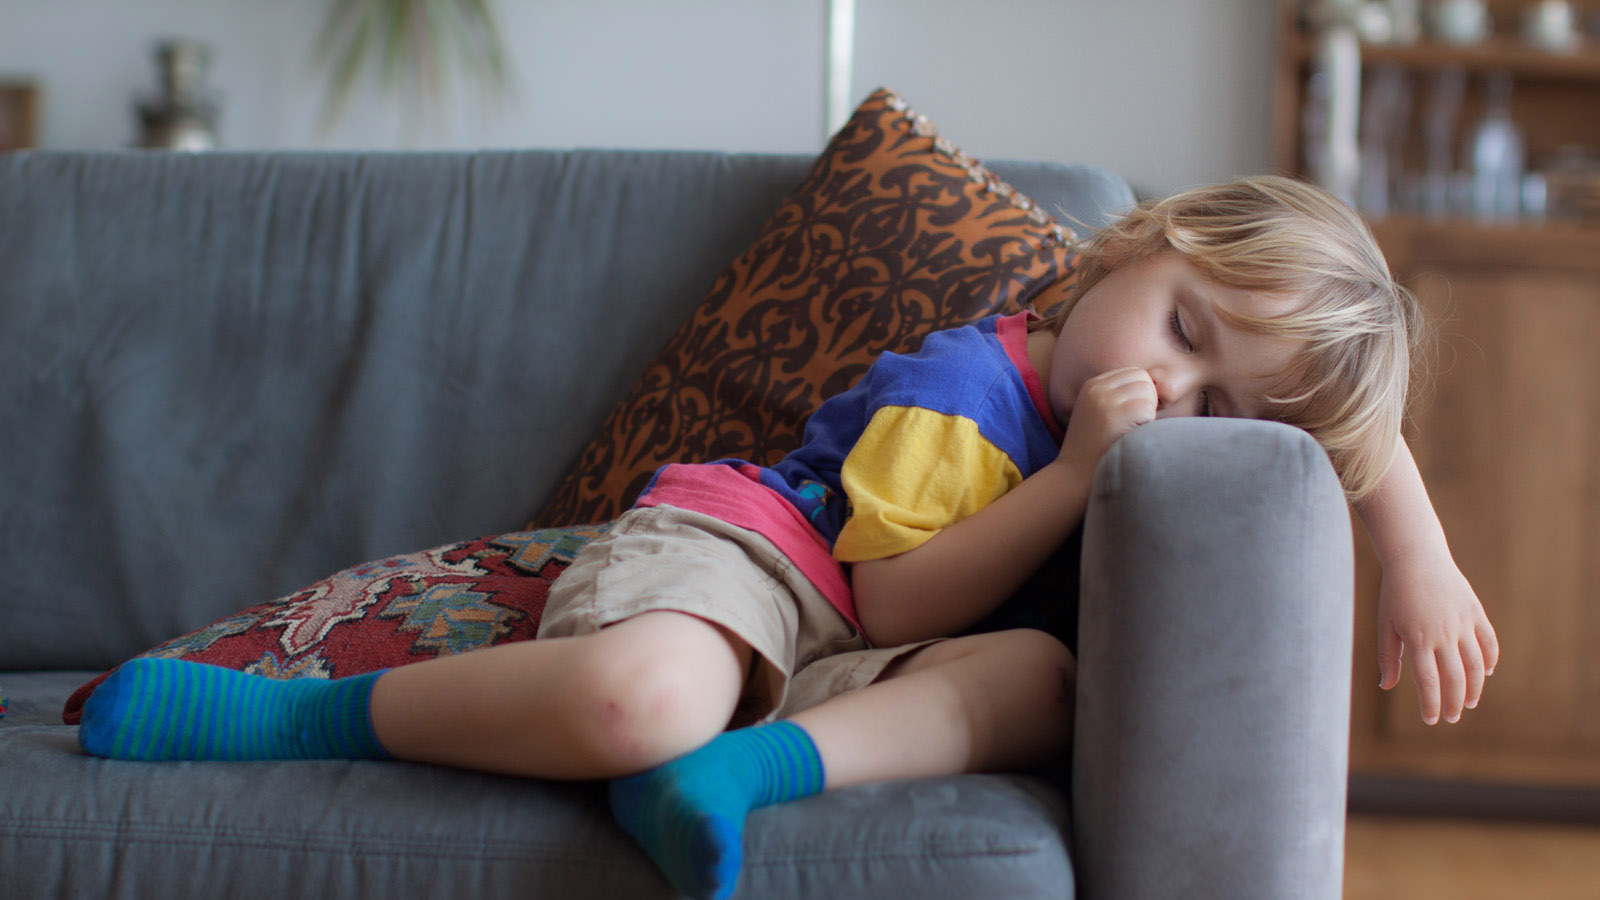 Teens and toddlers need more sleep